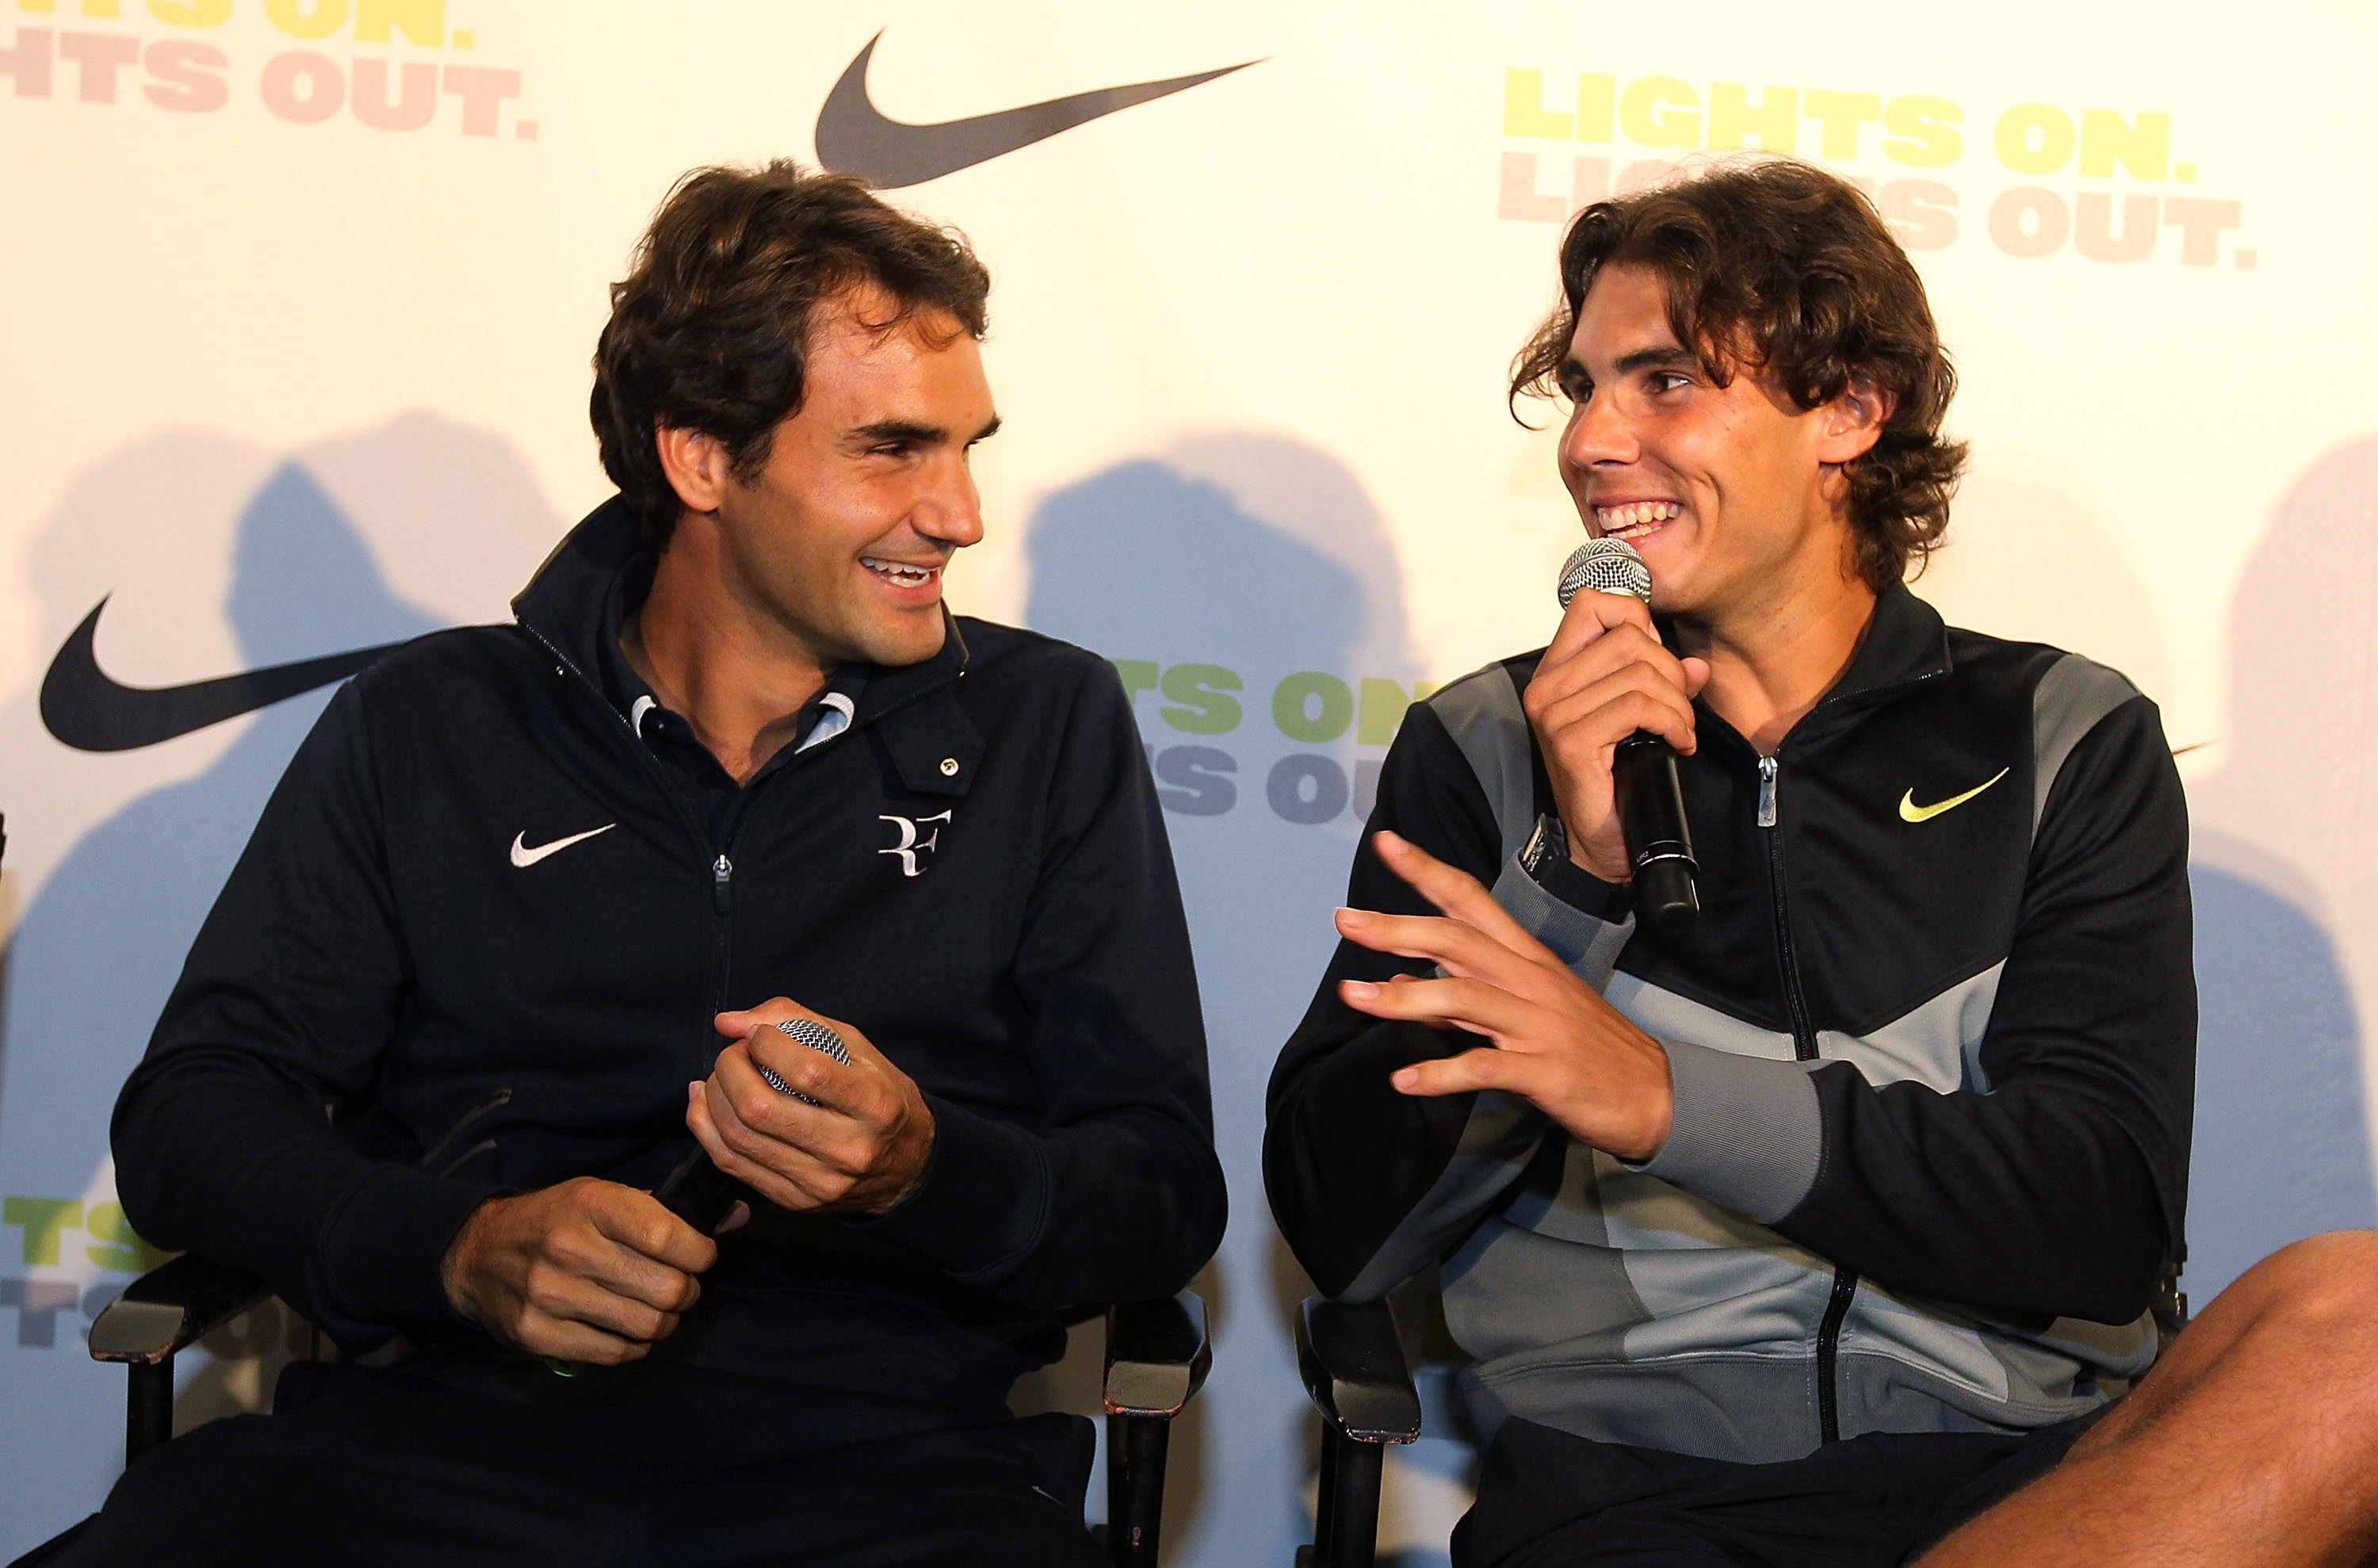 NEW YORK - AUGUST 25:  Roger Federe and Rafael Nadal appear at a press conference following The Nike Primetime Knockout Tennis Event at Pier 54 on August 25, 2010 in New York City.  (Photo By Al Bello/Getty Images for Nike)